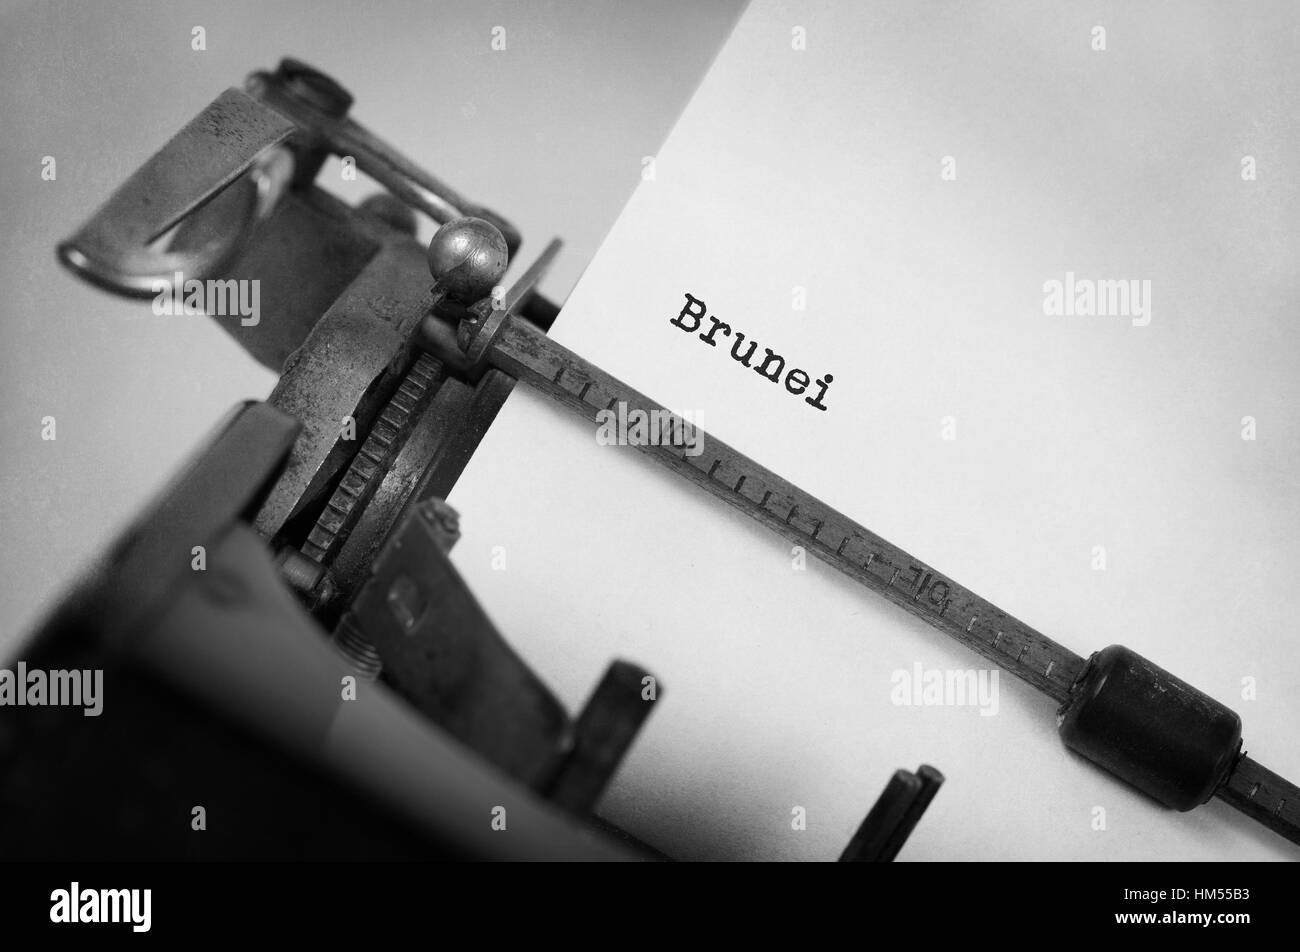 Inscription made by vinrage typewriter, country, Brunei - Stock Image